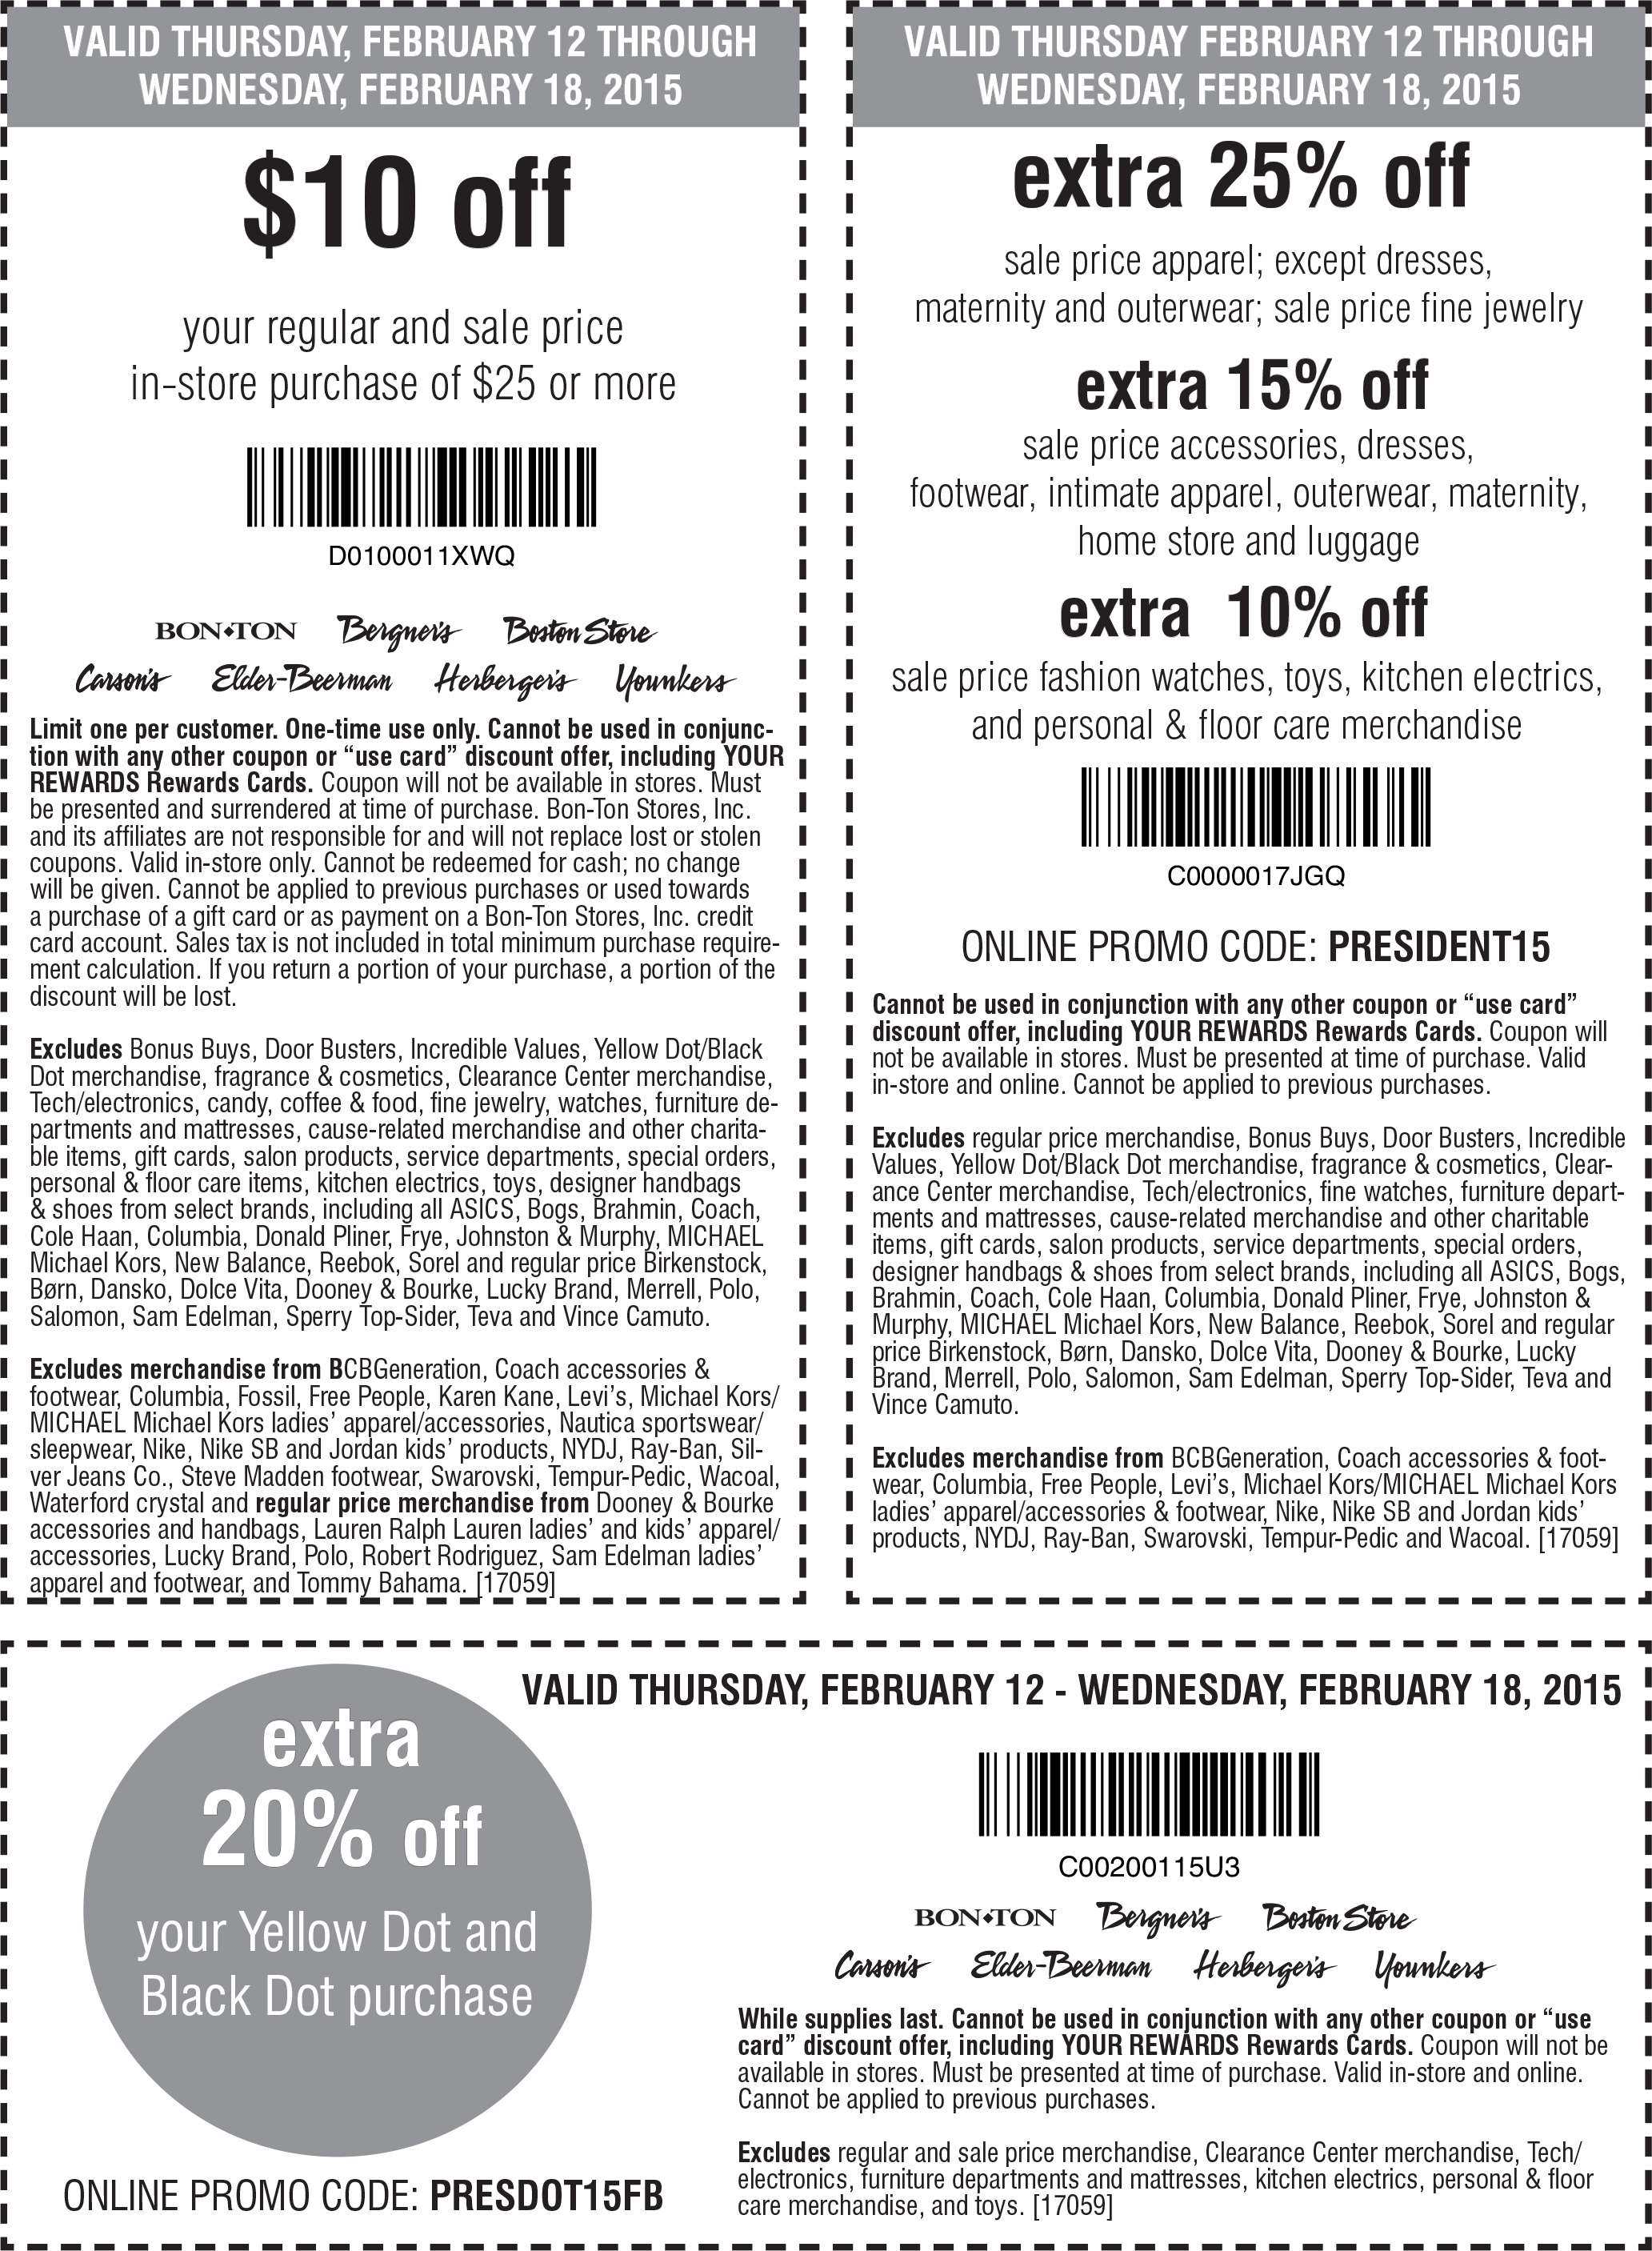 Carsons Coupon October 2018 $10 off $25 & more at Carsons, Bon Ton & sister stores, or 25% off sale apparel online via promo code PRESIDENT15